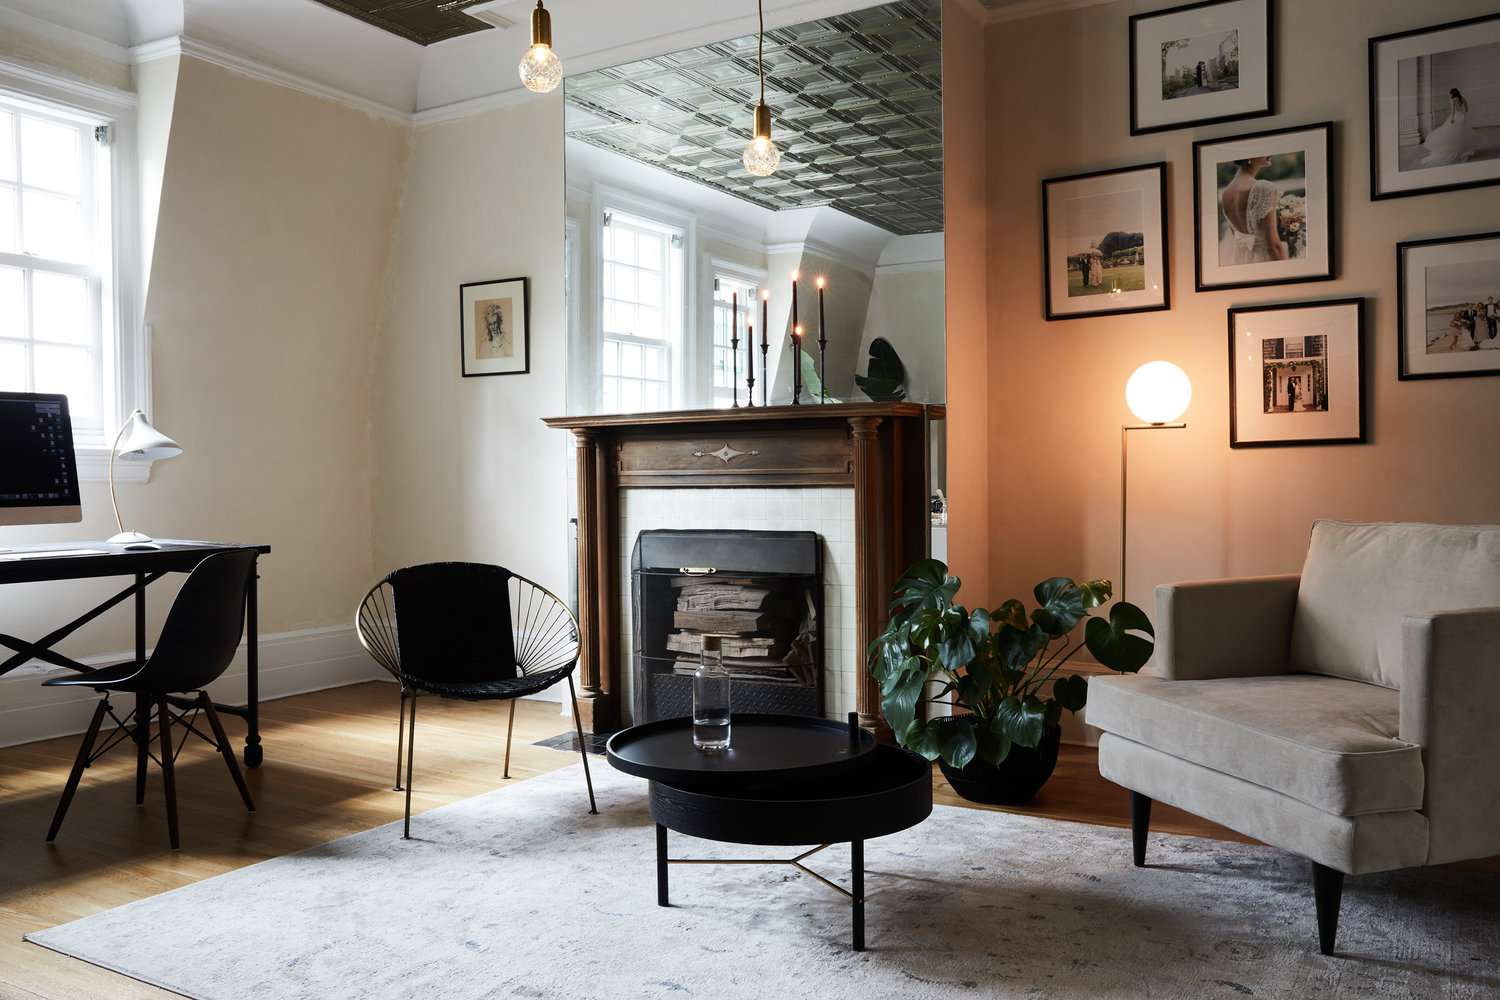 Small living room with a mirror above the mantle